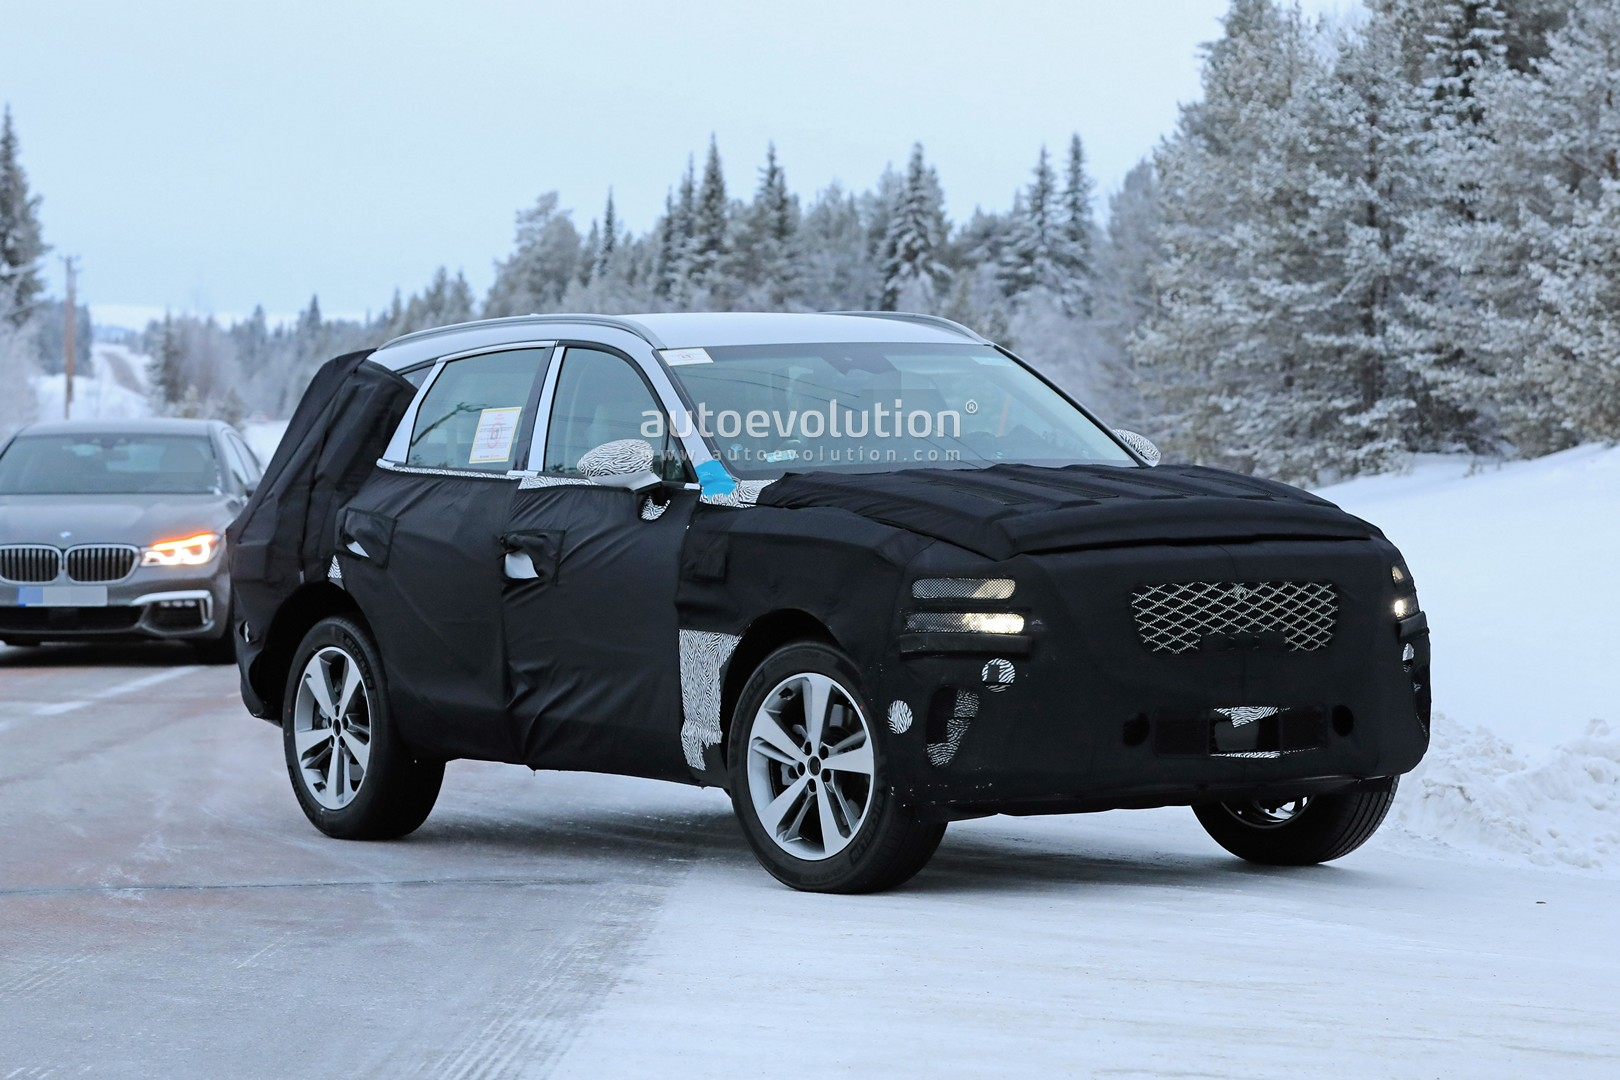 2019 - [Genesis] SUV GV80 - Page 2 Genesis-gv80-suv-prototype-makes-production-spyshots-debut_5